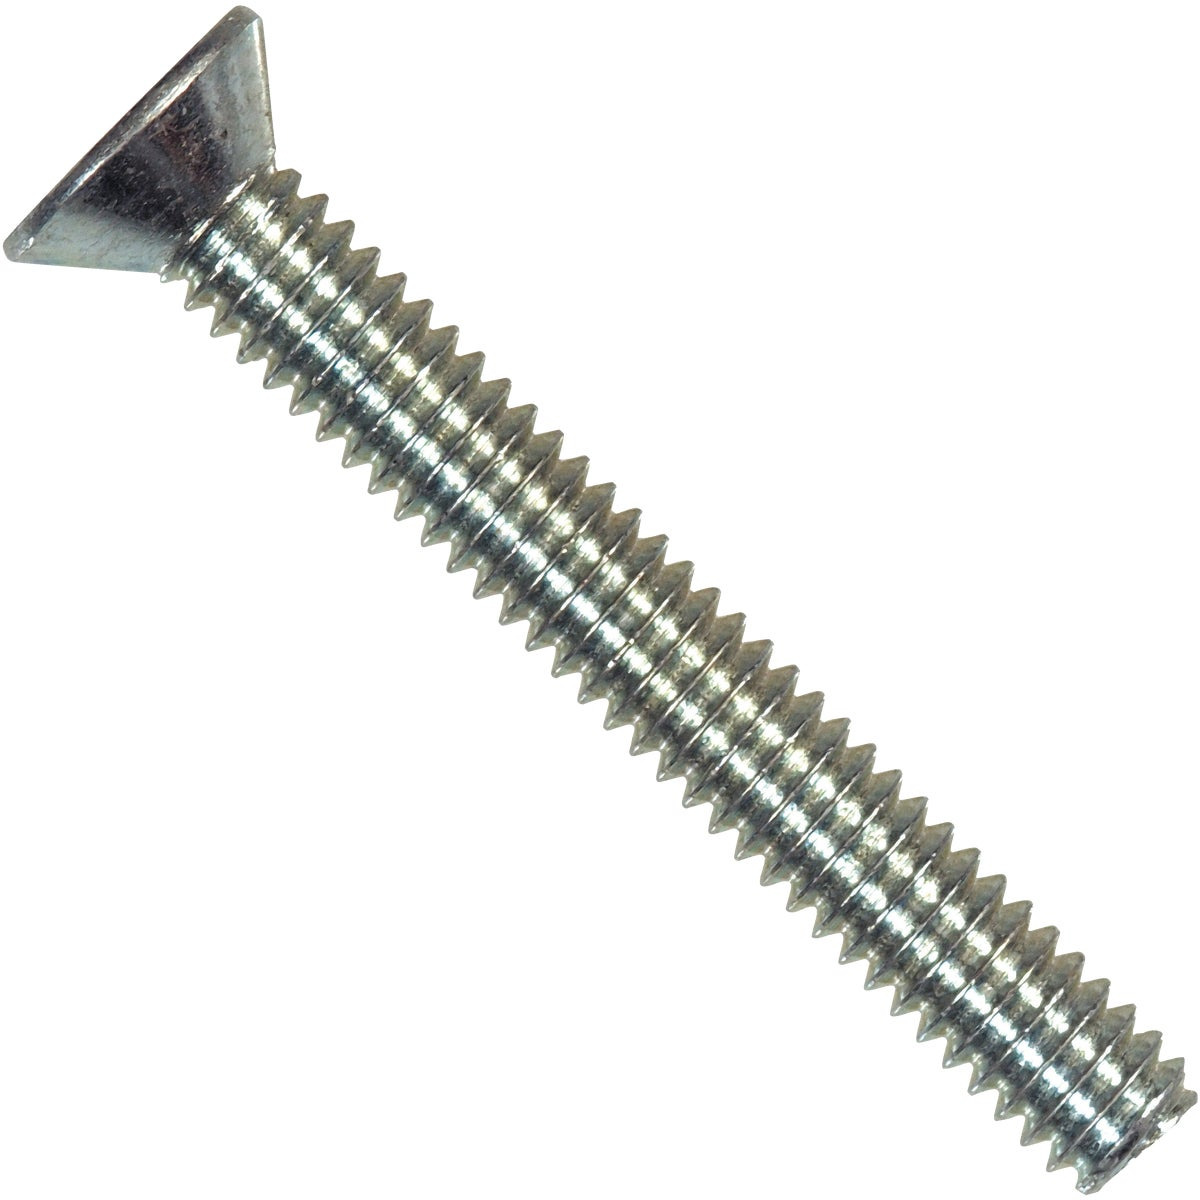 6-32X1 PH FH MACH SCREW - 101038 by Hillman Fastener